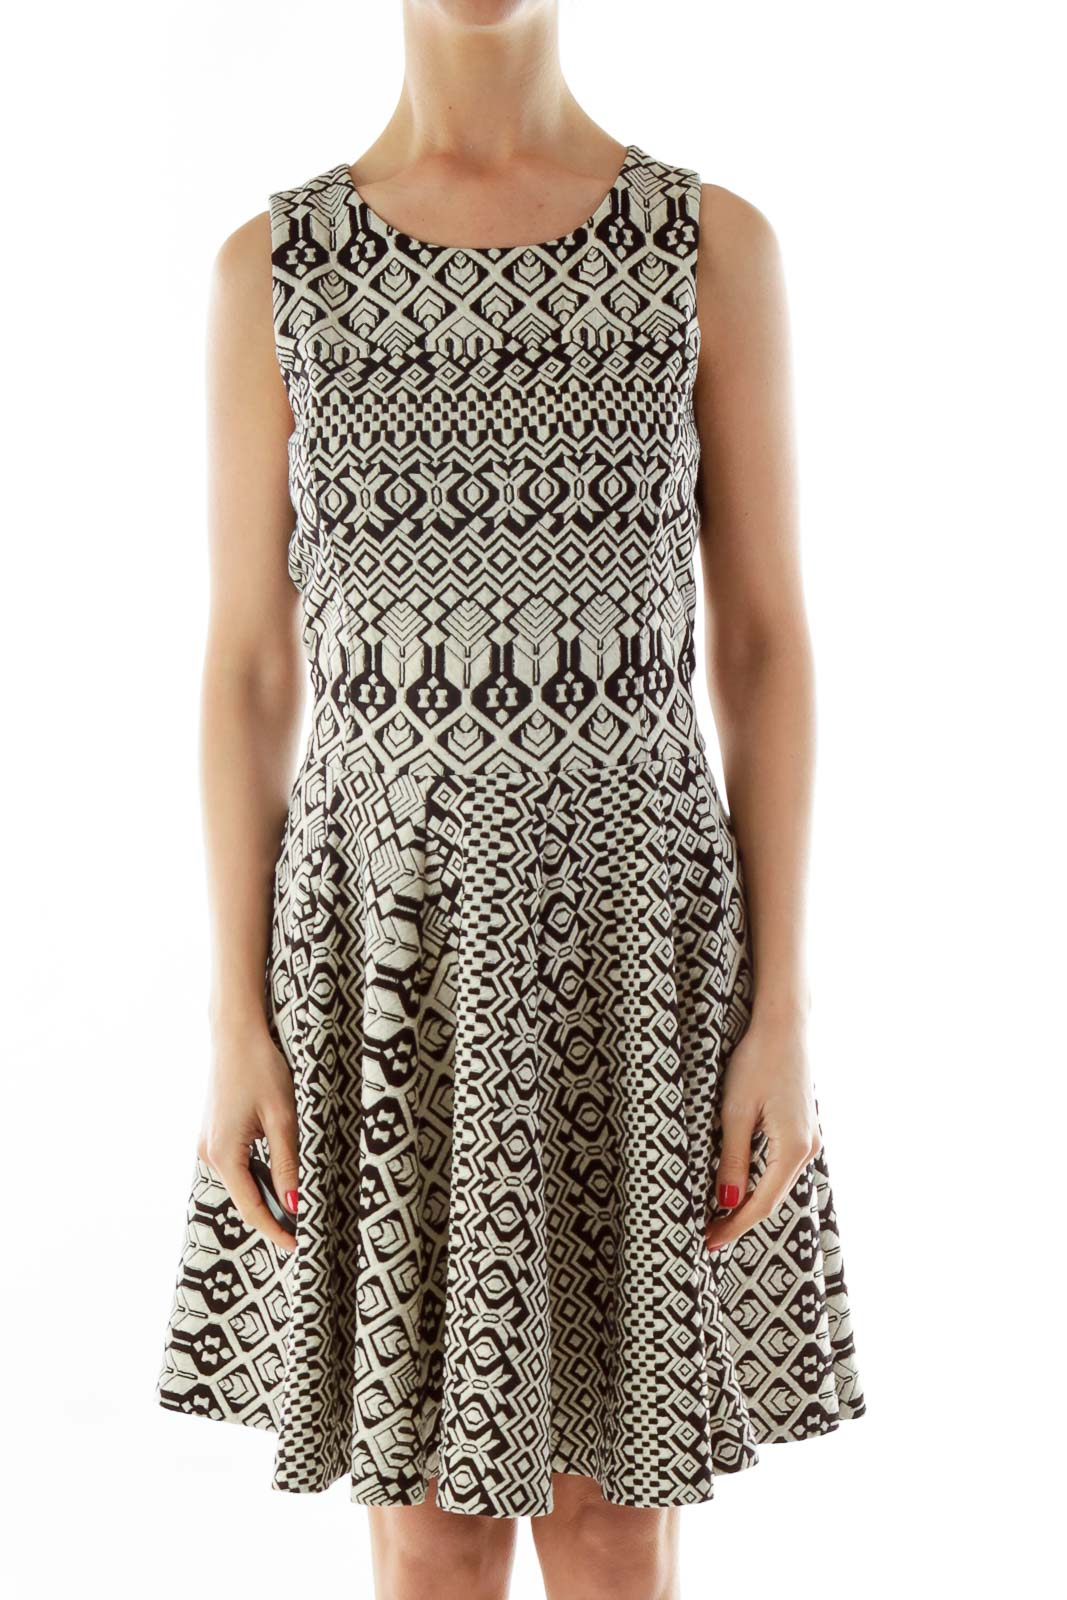 Black Cream Embroidered A-Line Work Dress Front